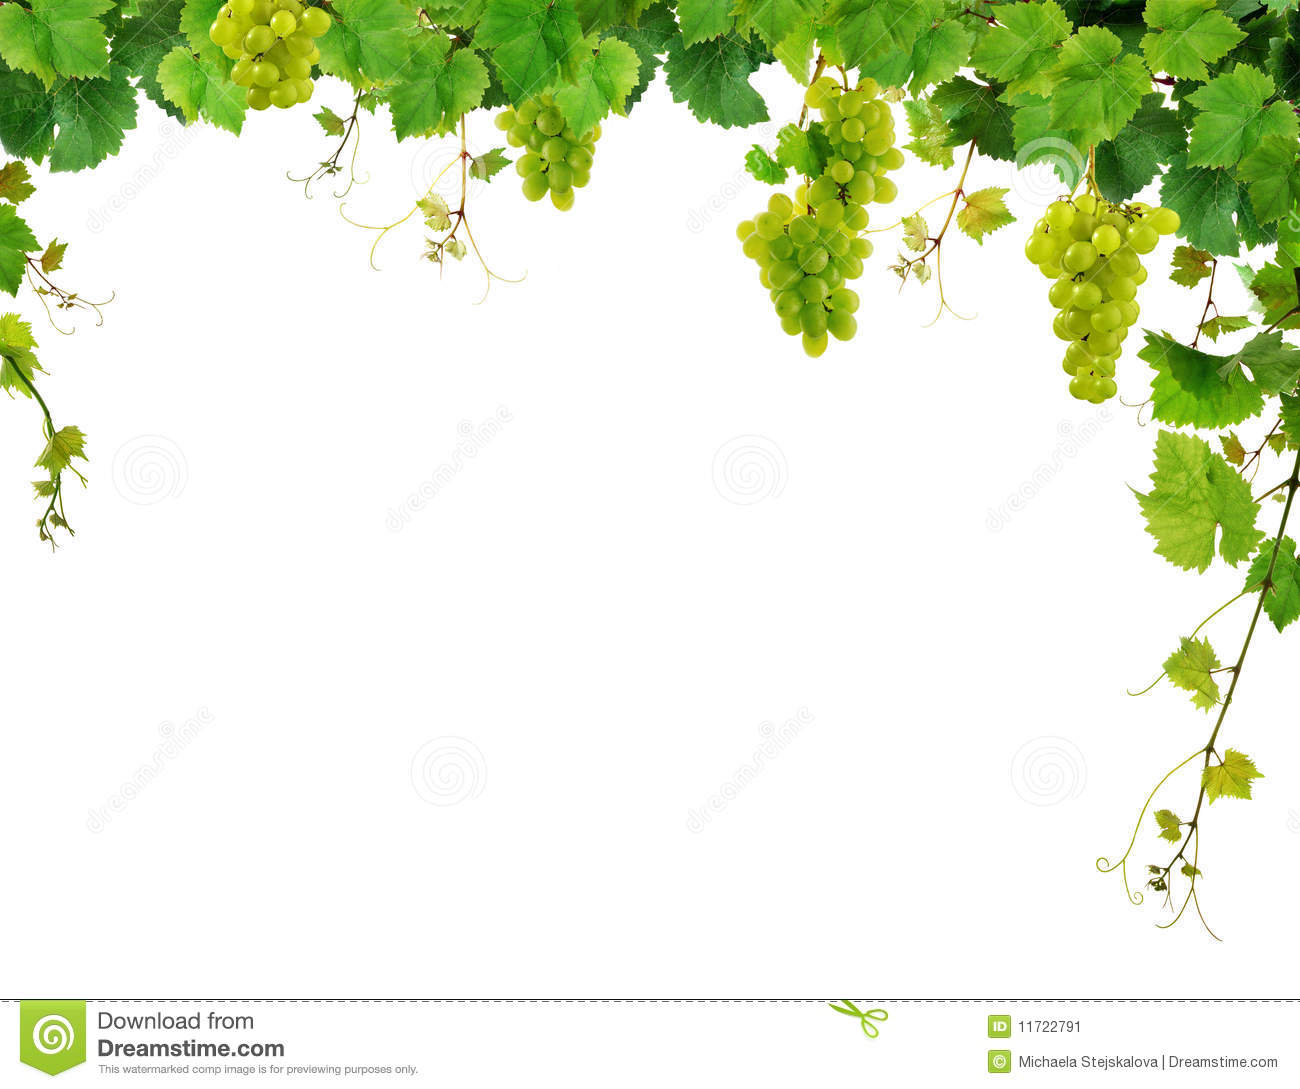 Grapevine Border With Grapes Stock Image - Image: 11722791